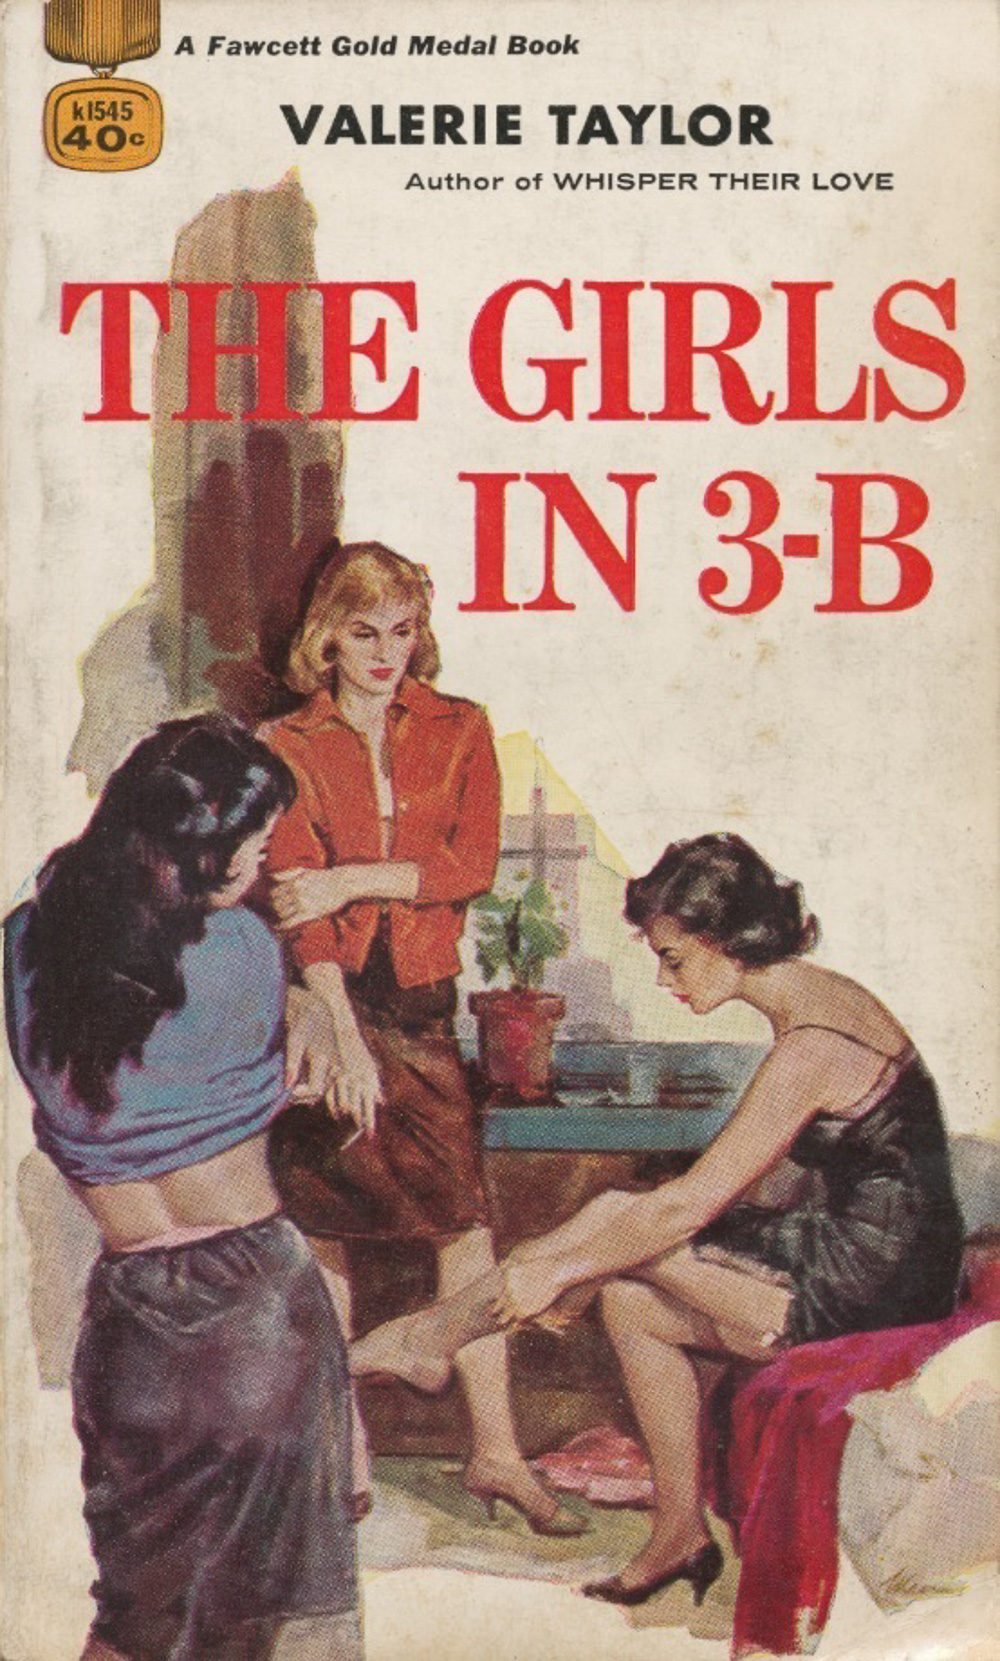 The Girls in 3B by Valerie Taylor